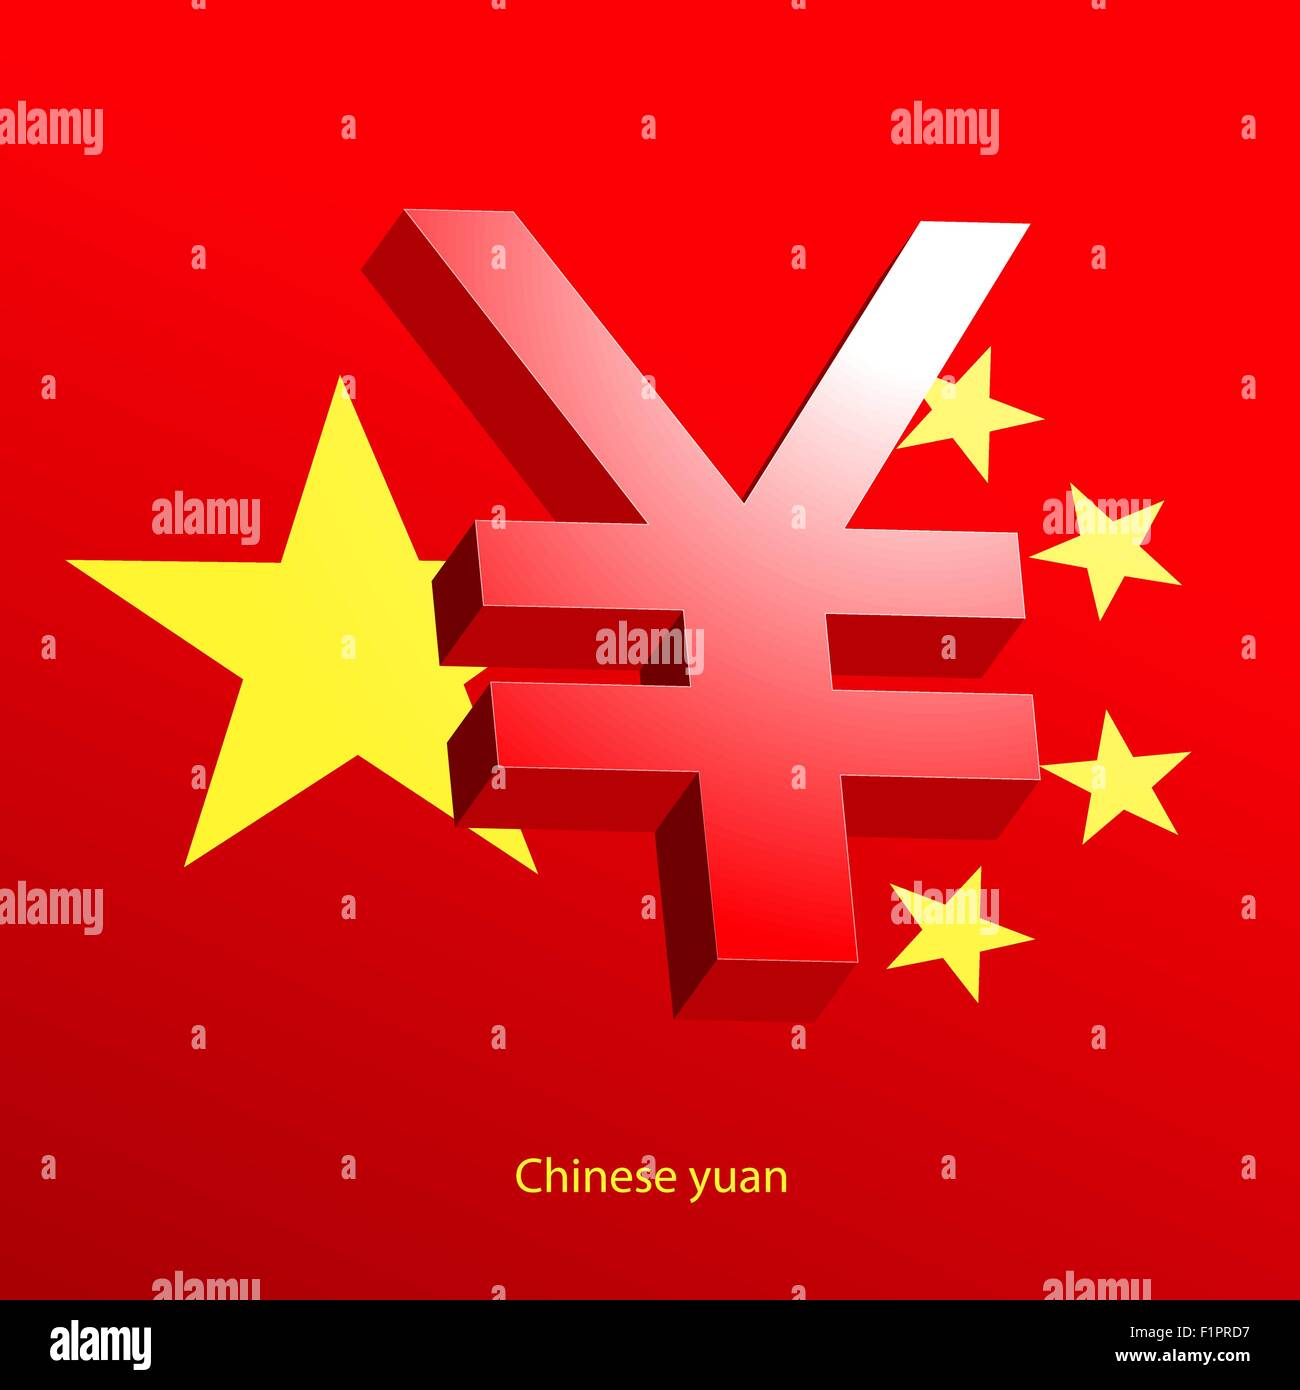 Yuan currency 3d symbol on a red background stock vector art yuan currency 3d symbol on a red background biocorpaavc